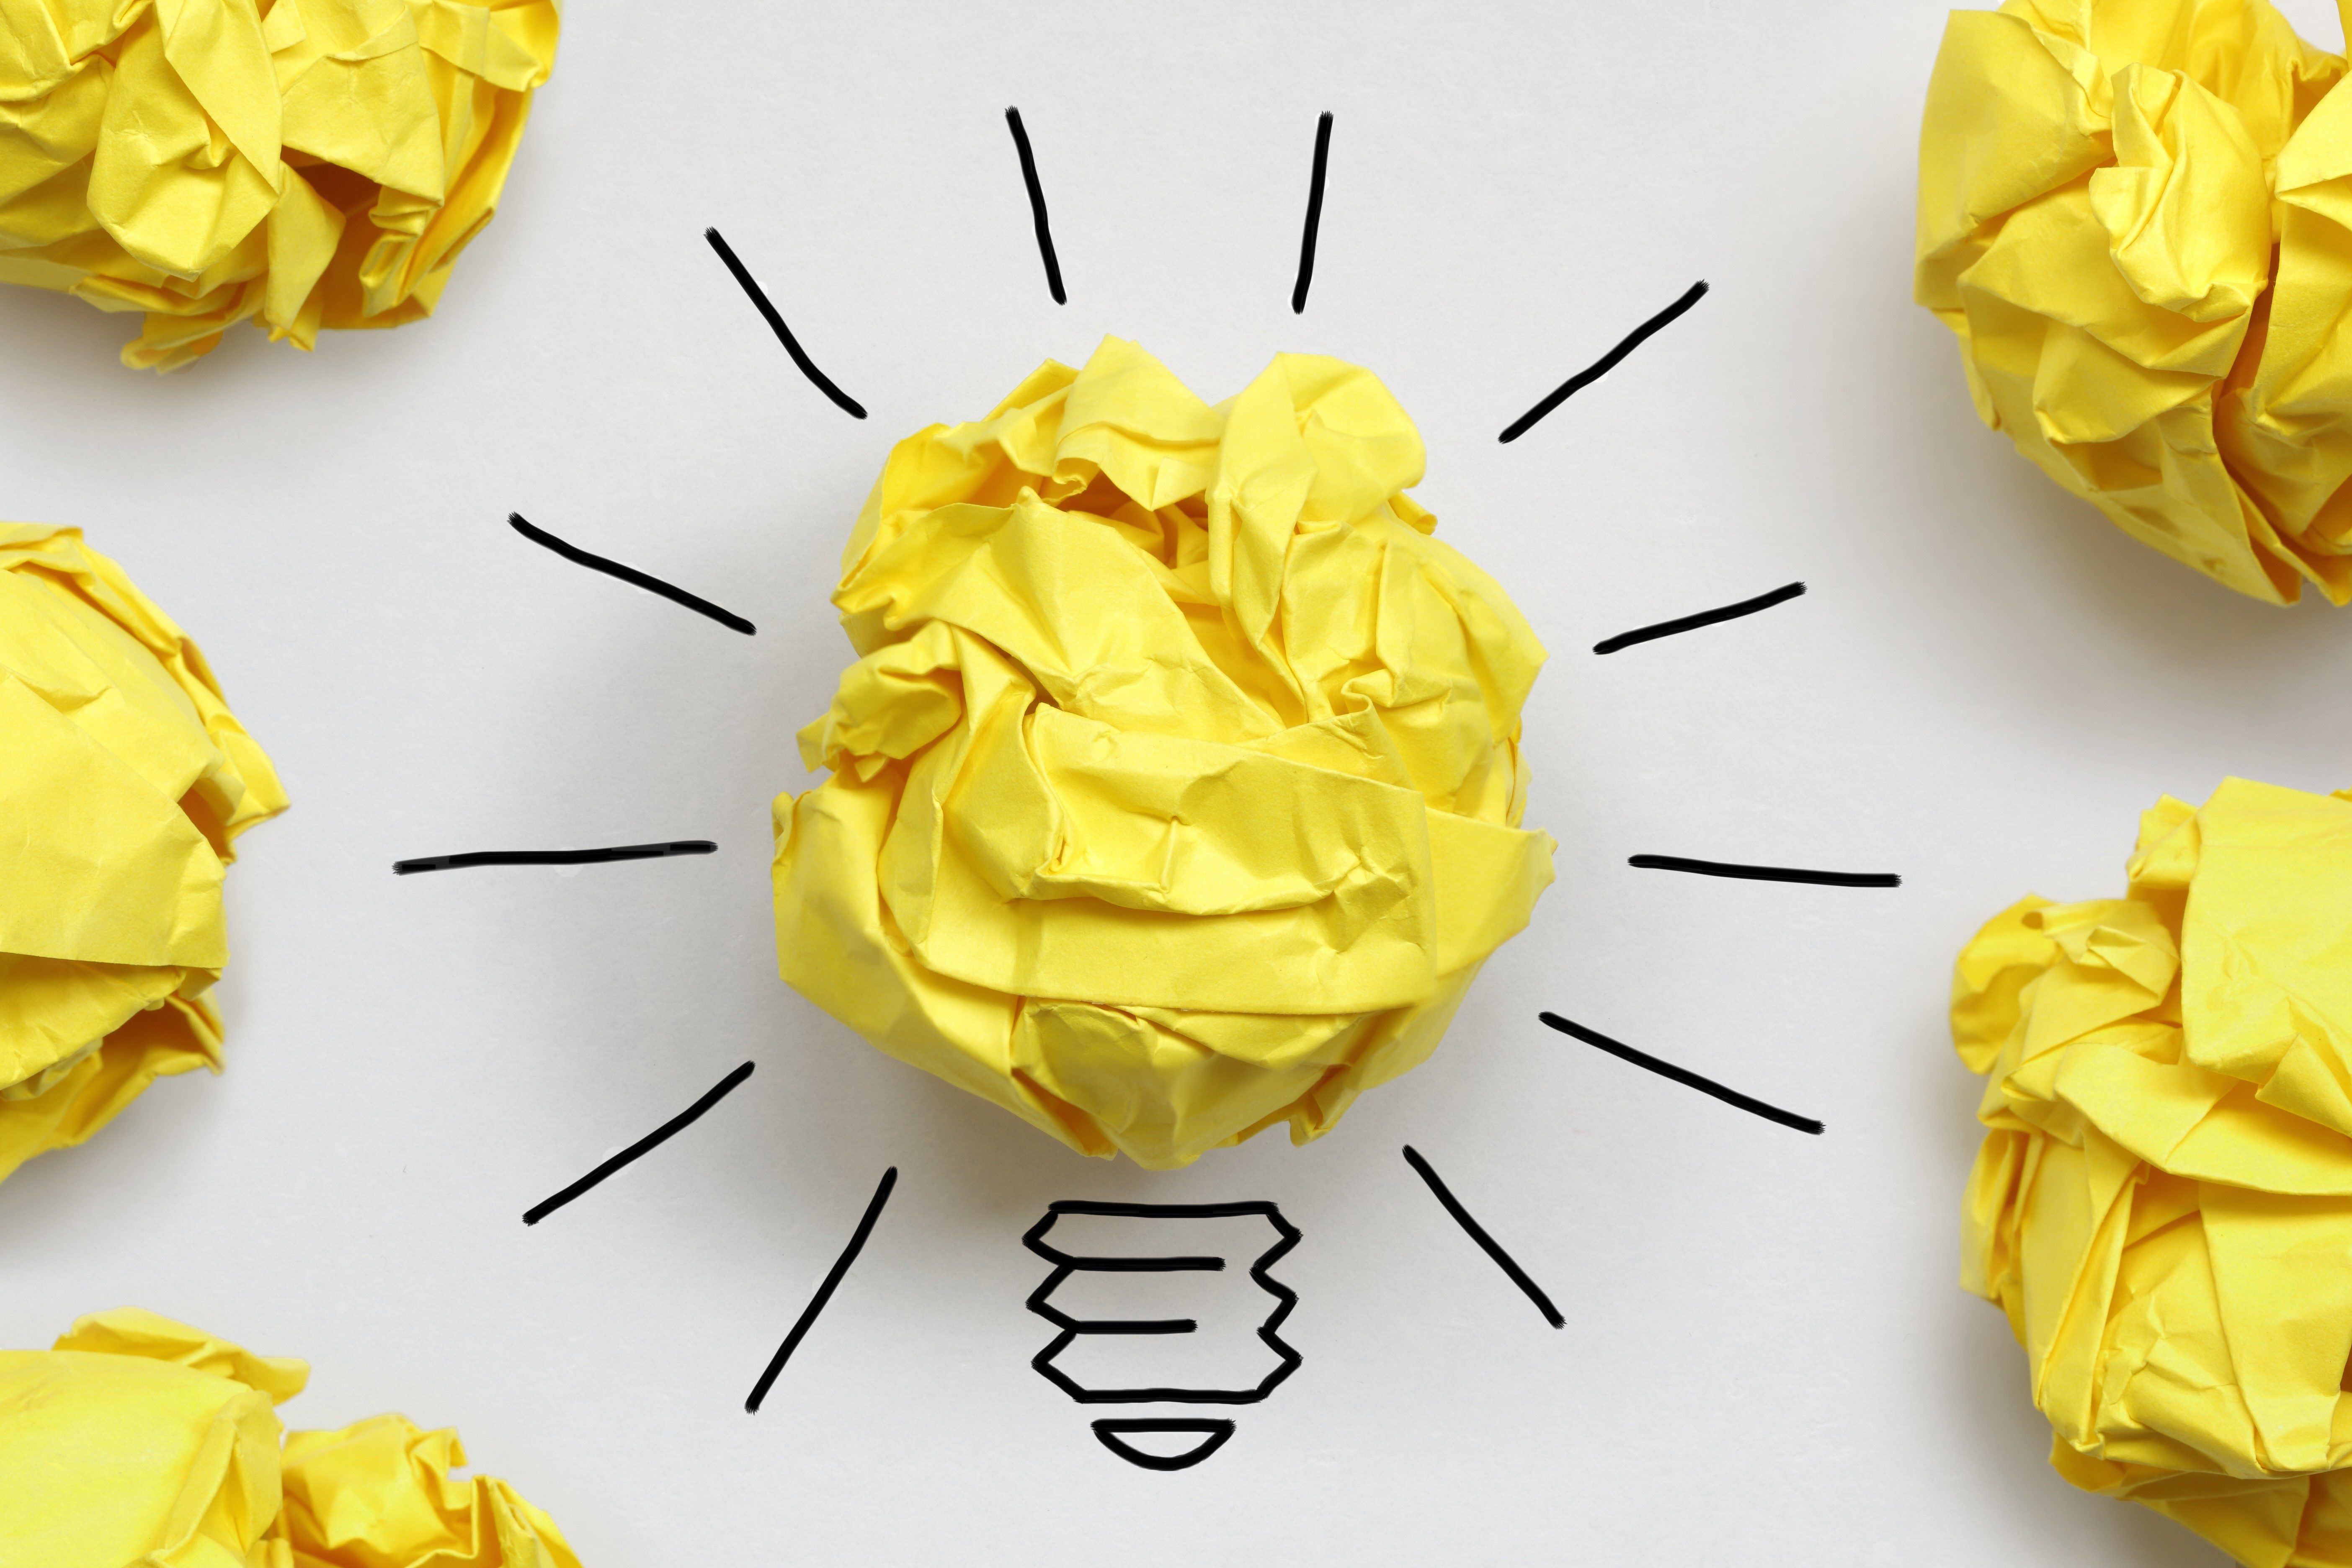 Inspiration concept crumpled paper light bulb metaphor for good idea; Shutterstock ID 146379659; Job (TFH, TOH, RD, BNB, CWM, CM): RD